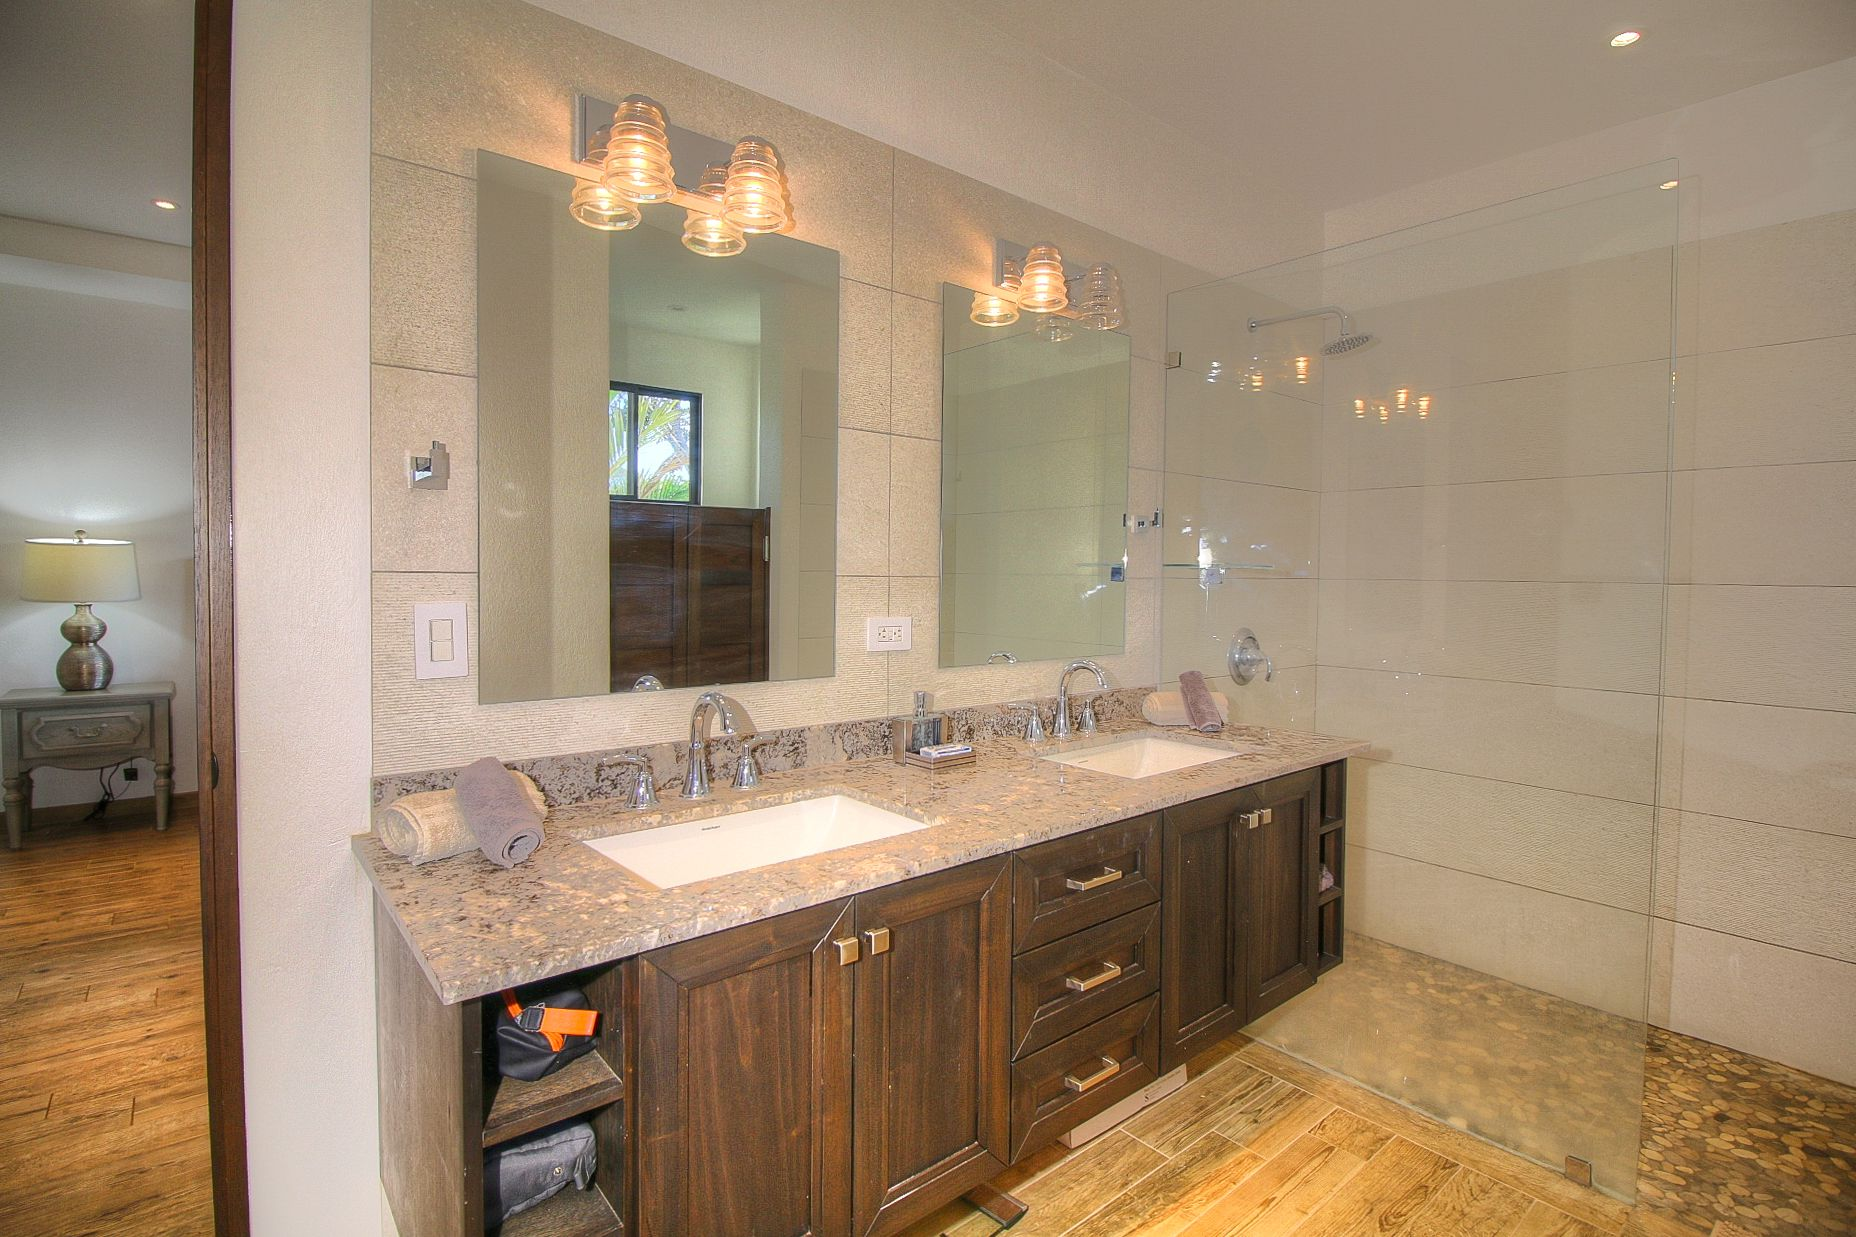 Bath with shower and double sinks